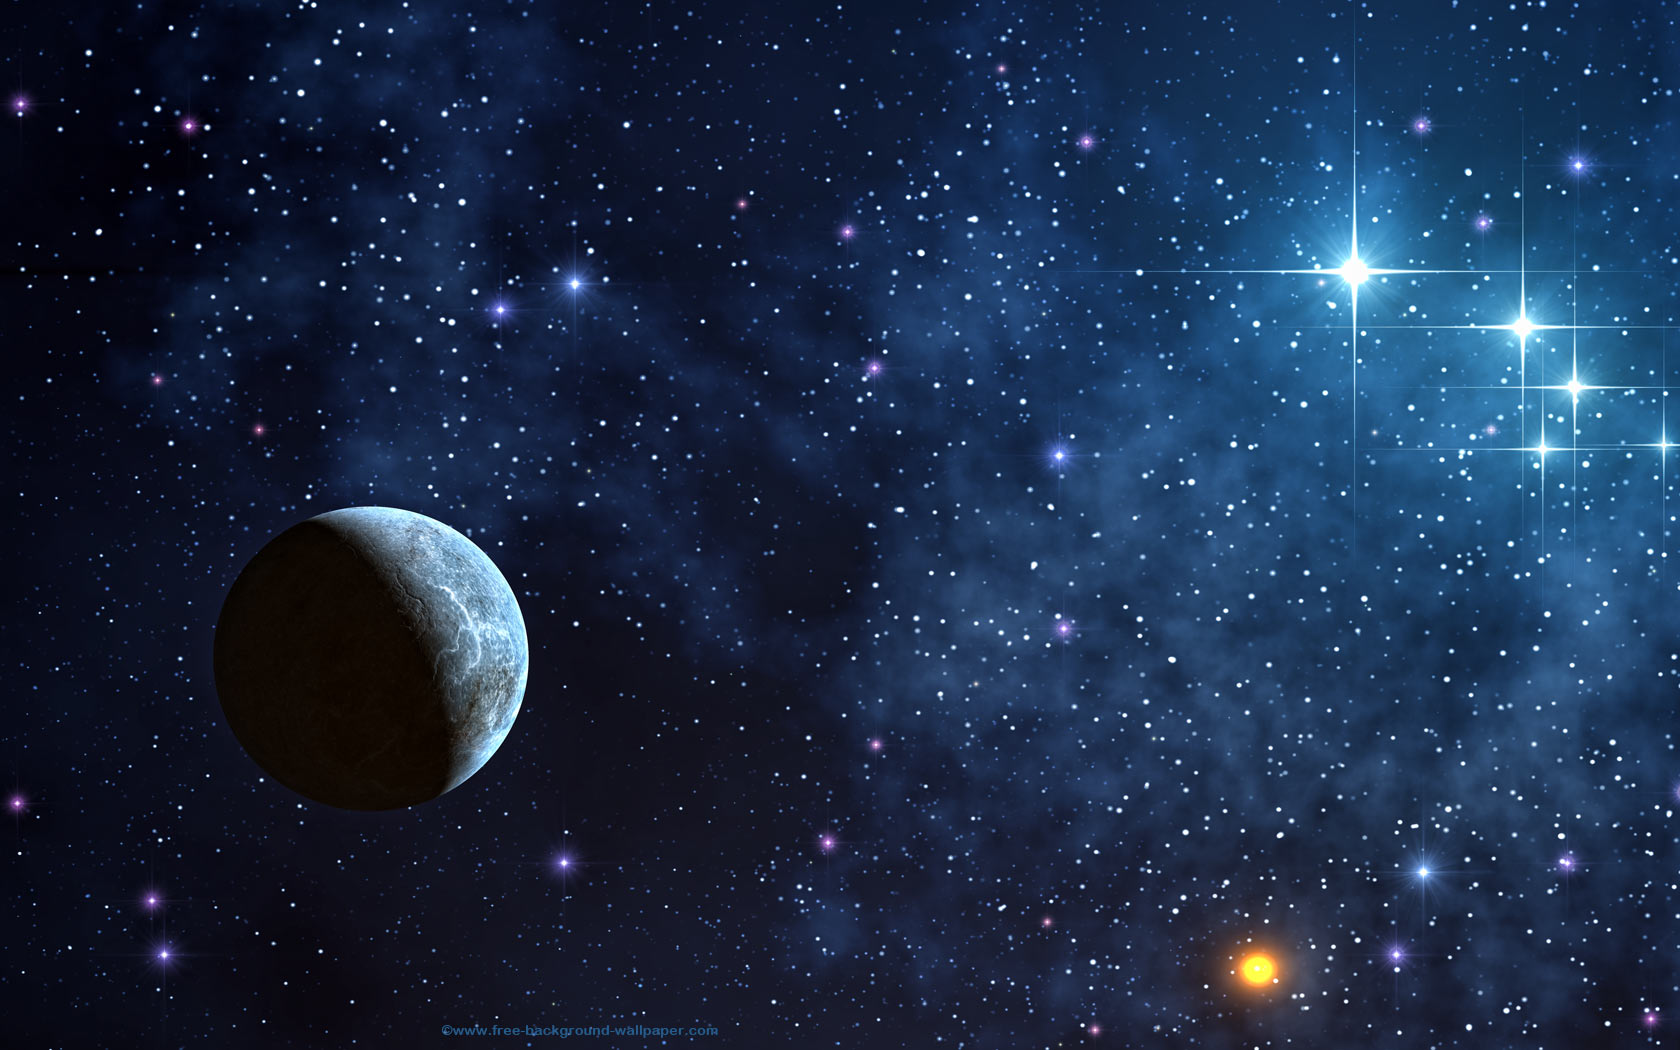 Stars In The Sky Wallpapers For IPhone. Most Beautiful Space Photos and Wallpapers. 3D Space Wallpapers.